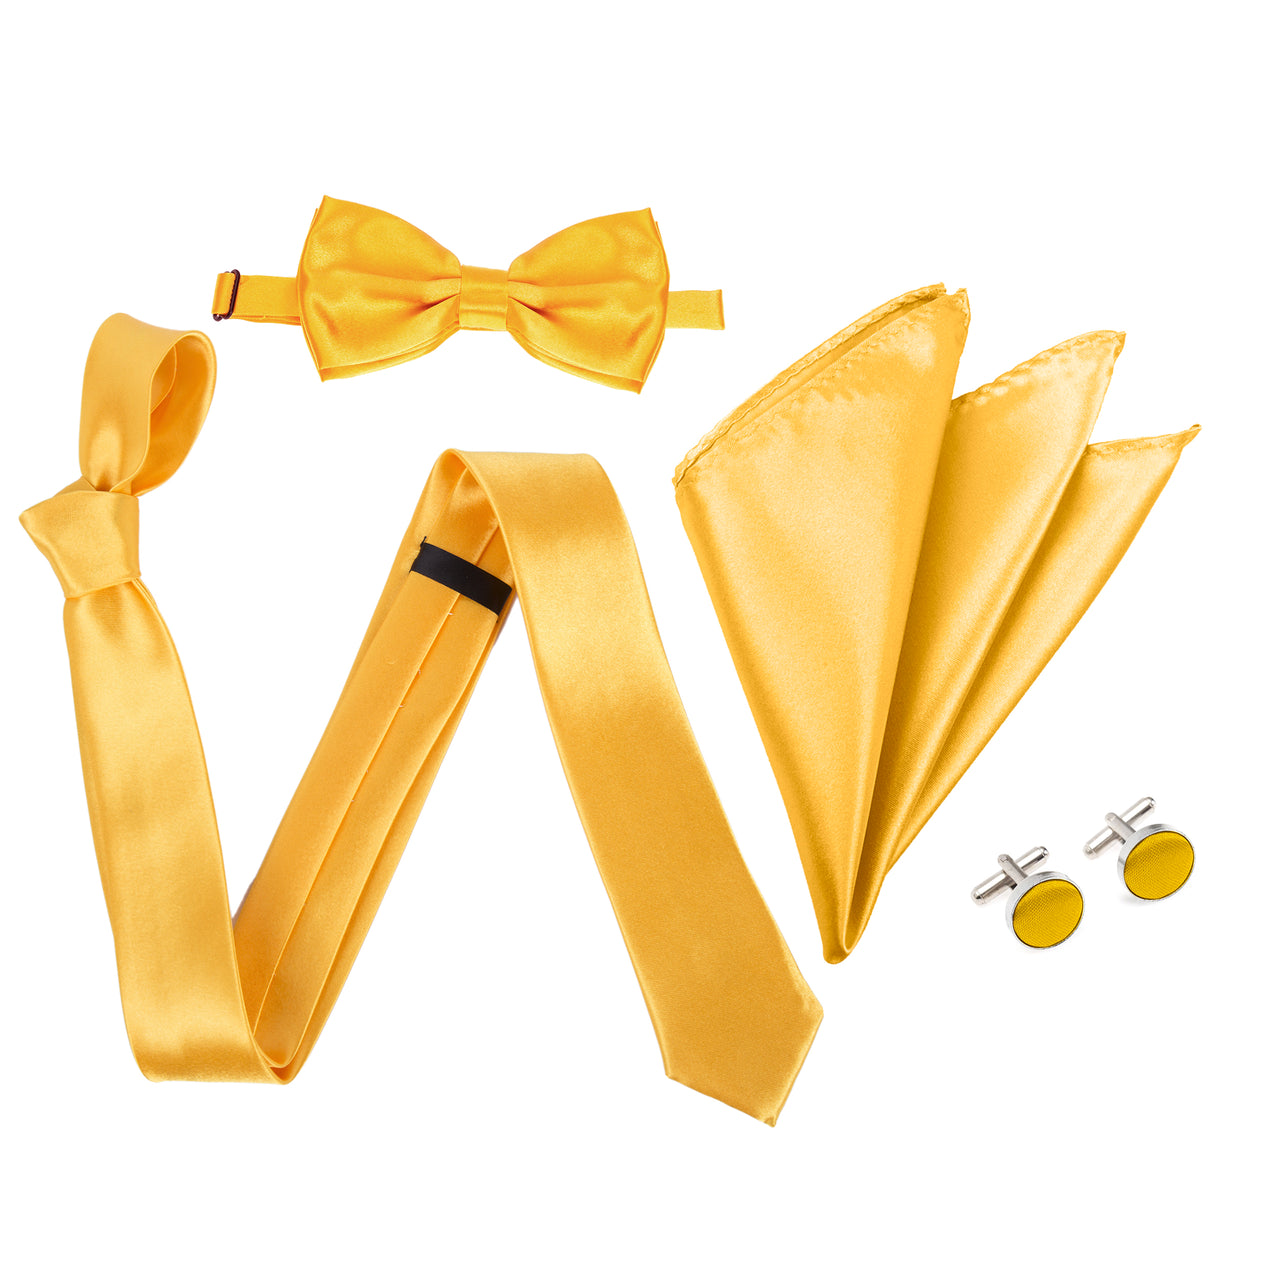 "4pc Tie Set: Slim 2"" Tie, Bow Tie, Handkerchief & Cufflinks - Golden Yellow"